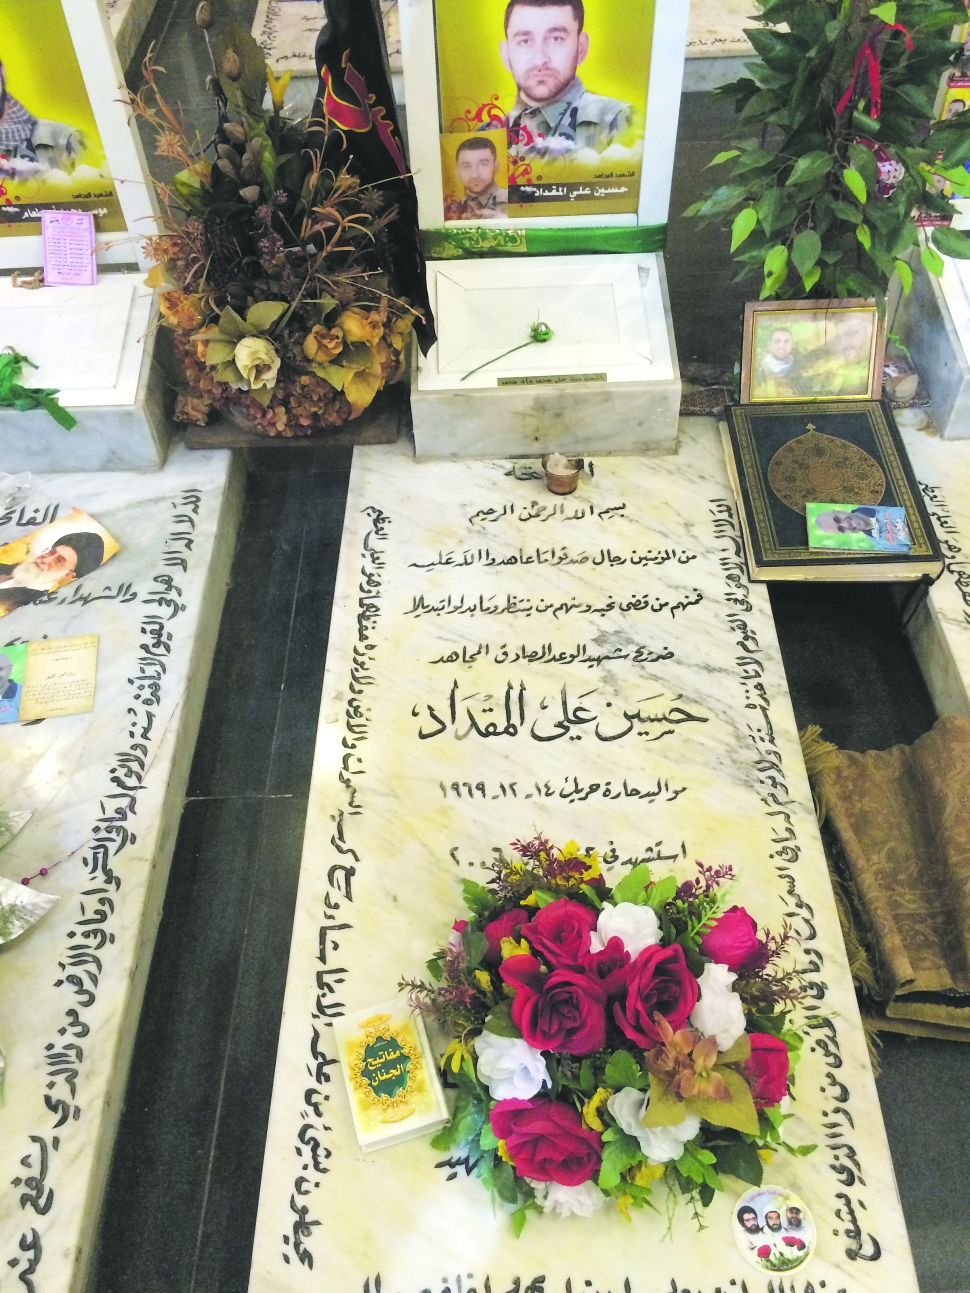 Grave site. Deceased unknown. Same graveyard as Hadi Nasrallah and Mustafa's mother buried at PHOTO CREDIT: Ken Silverstein